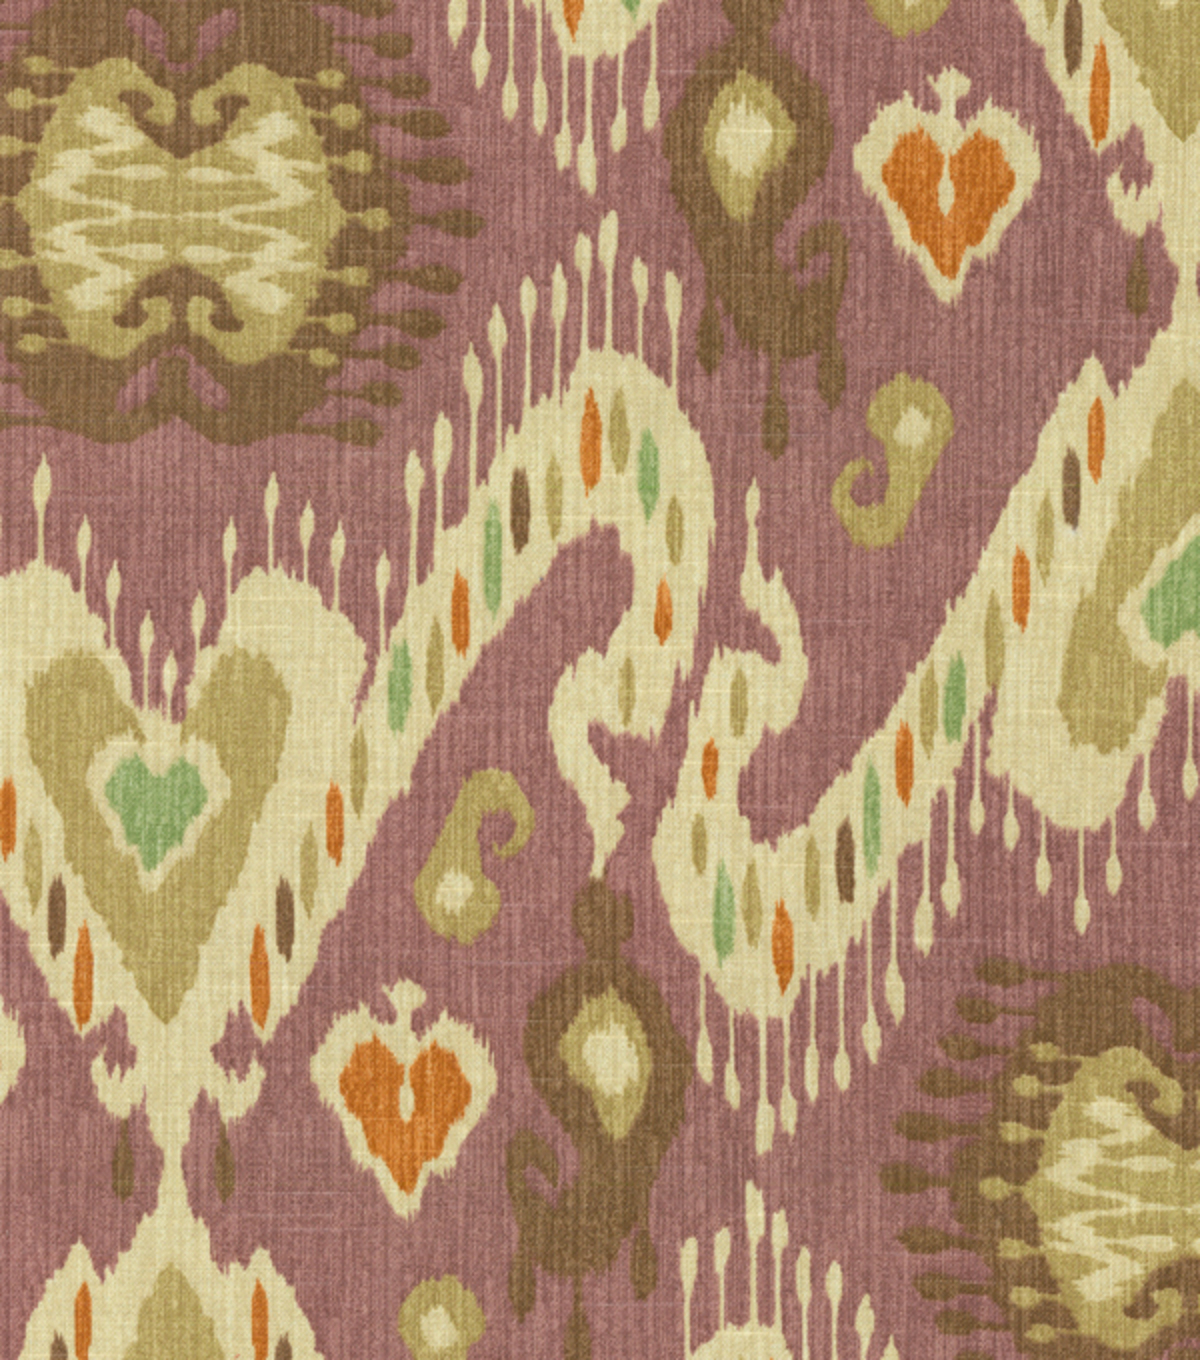 Home Decor 8\u0022x8\u0022 Fabric Swatch-Waverly Enlightened Mulberry